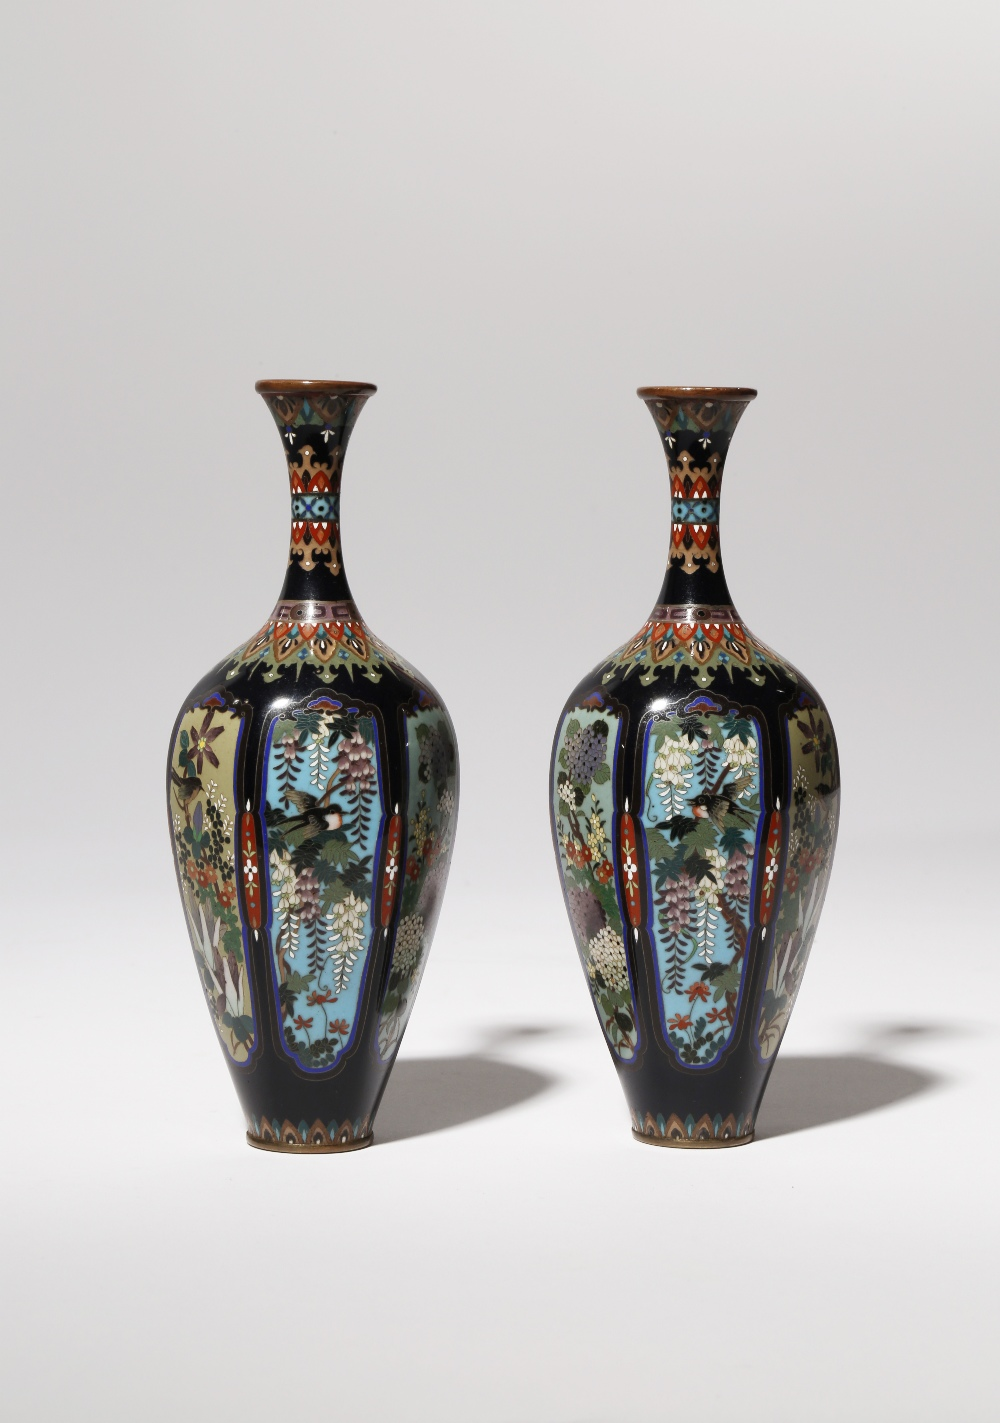 A PAIR OF JAPANESE CLOISONNE VASES BY OTA KICHISABURO MEIJI PERIOD, 19TH OR 20TH CENTURY The tall